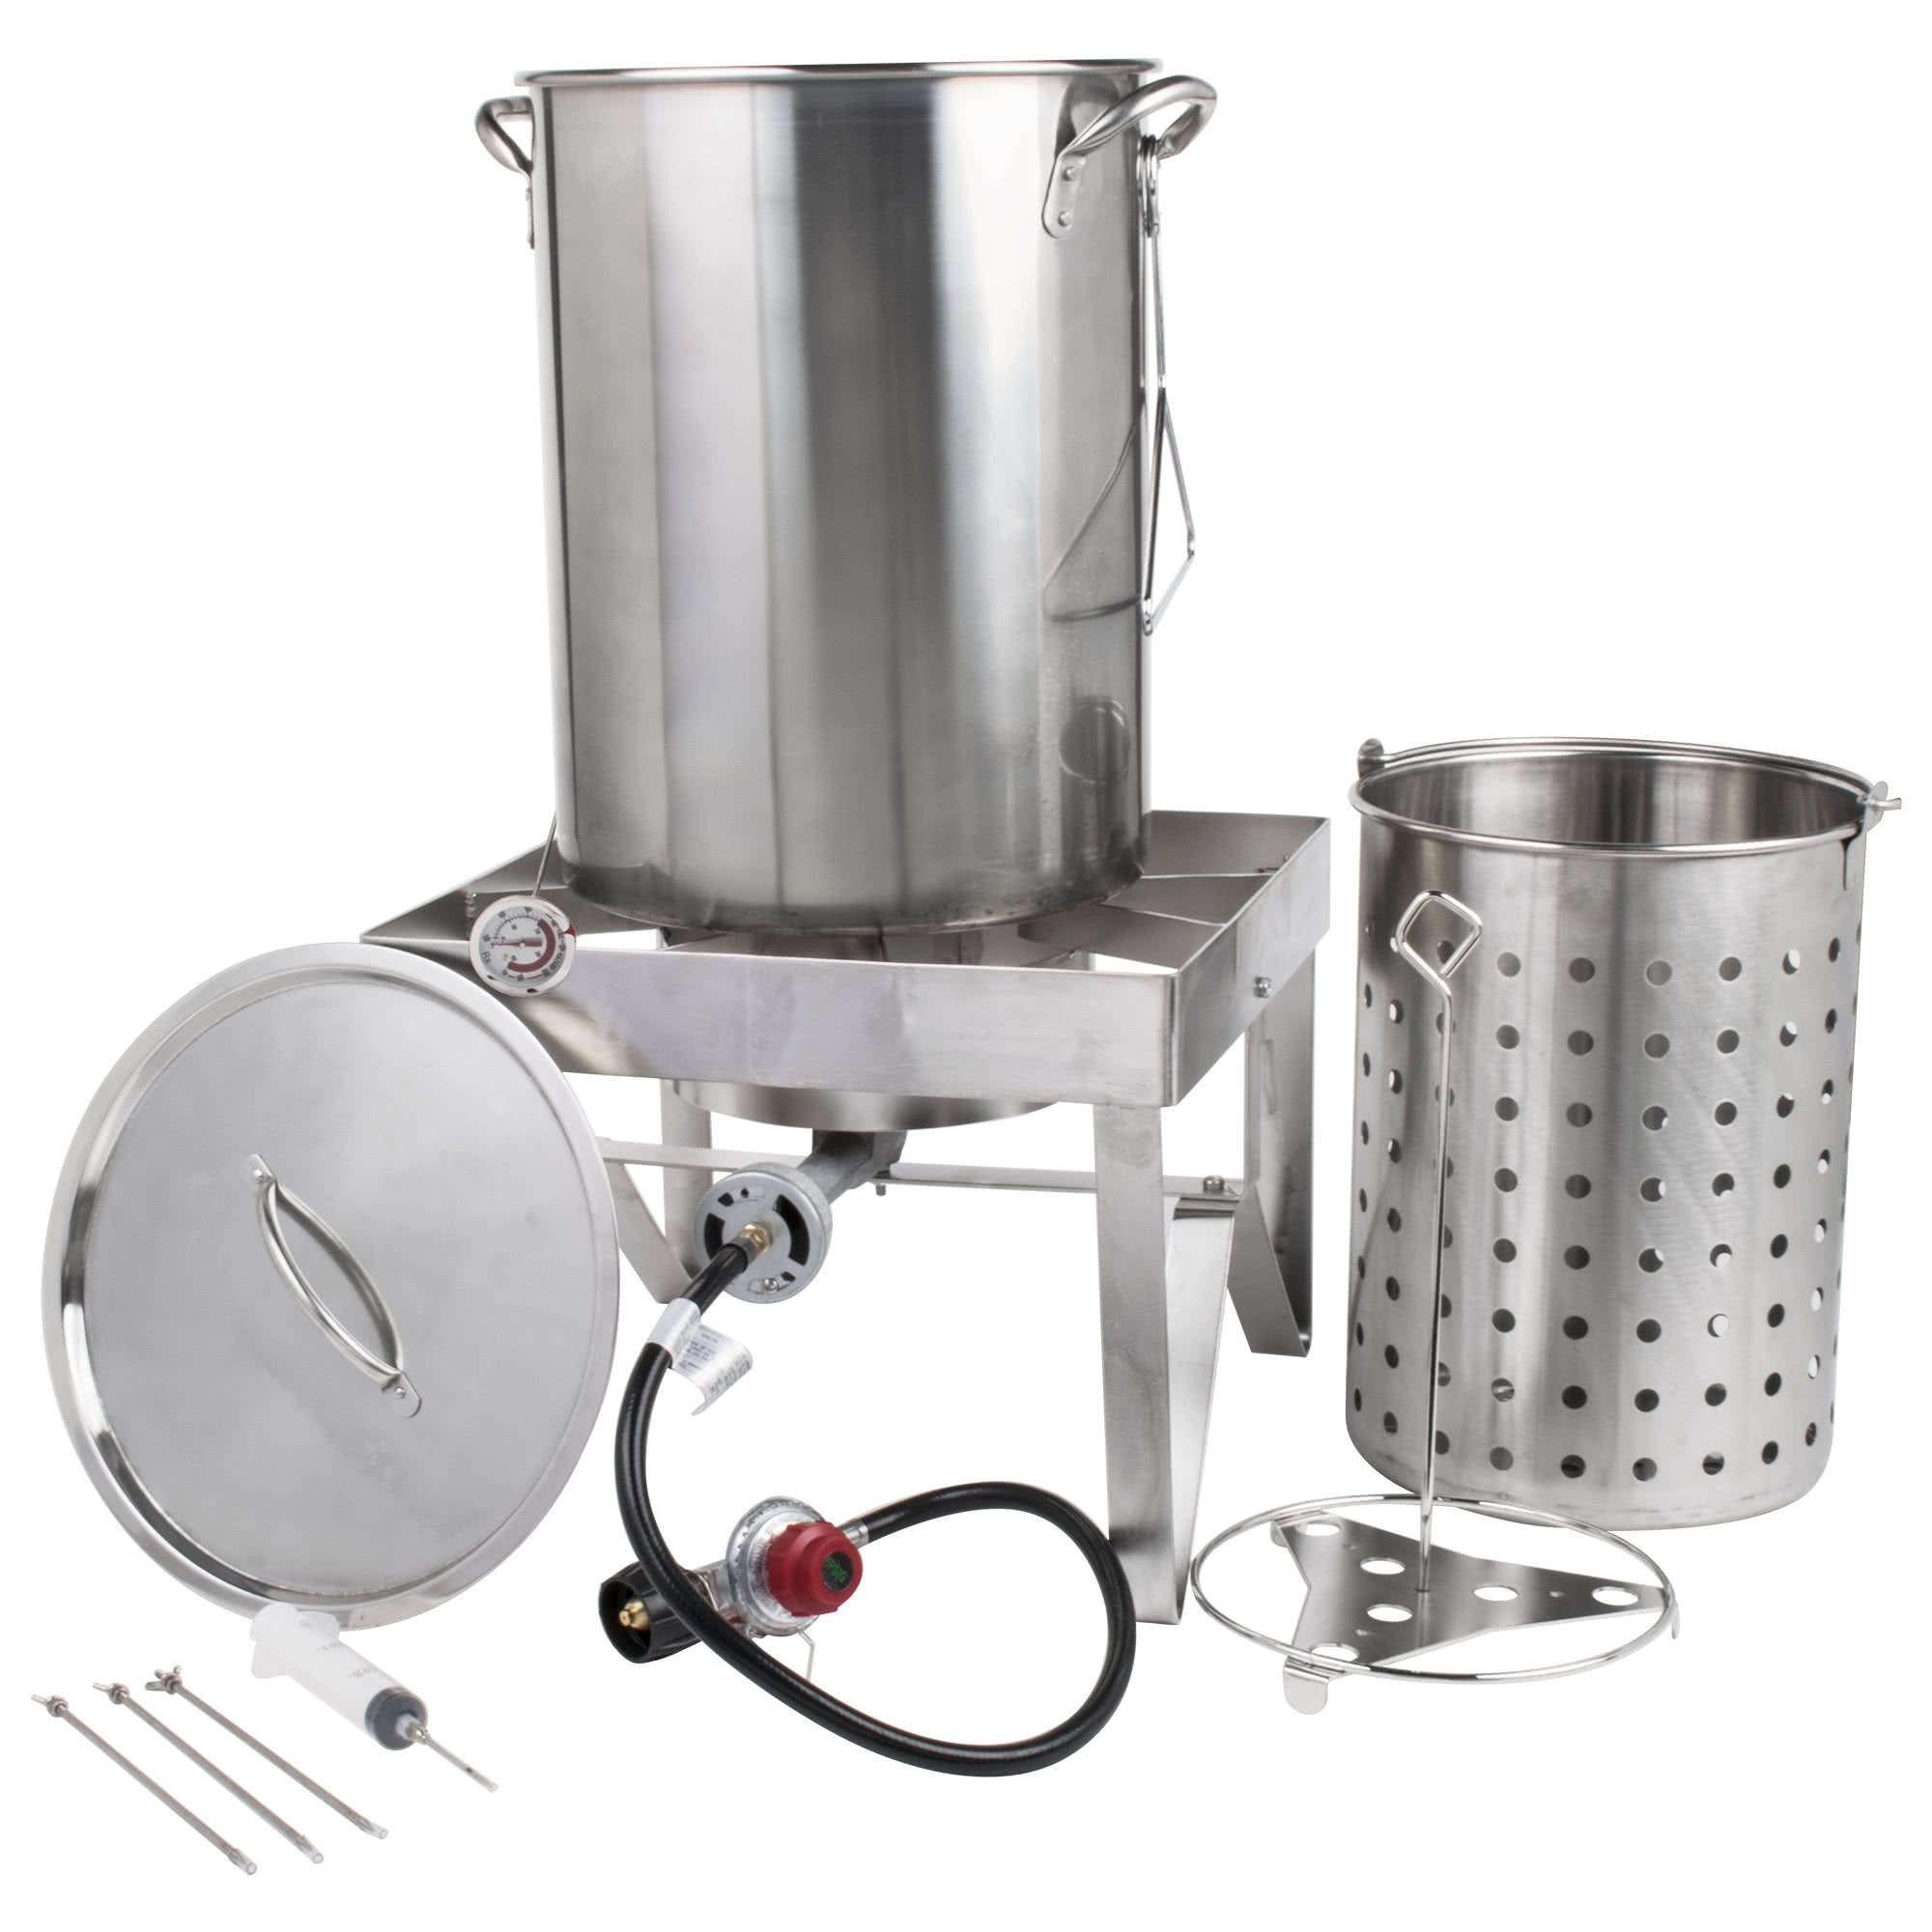 Backyard Pro All-in-One Kit All Stainless Steel 30Qt. Turkey Fryer Kit/Steamer Kit - 55,000 BTU/Outdoor Propane Fry Kit Cooking + 12'' Probe Thermometer + 3-Piece Skewer Set + 1 oz. Marinade Injector